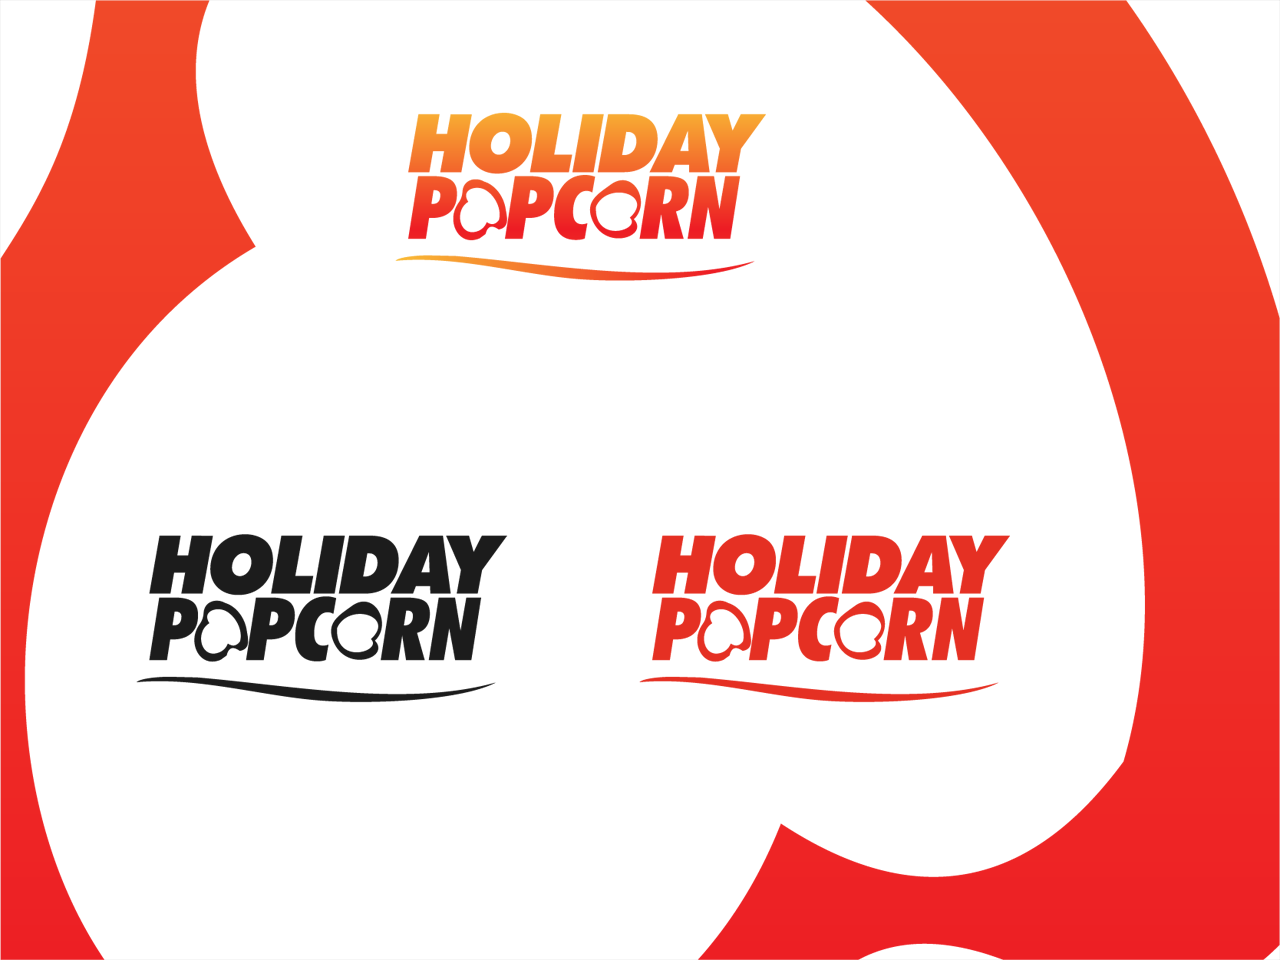 Logo Design by Mithra  Ravindran - Entry No. 9 in the Logo Design Contest Holiday Popcorn.